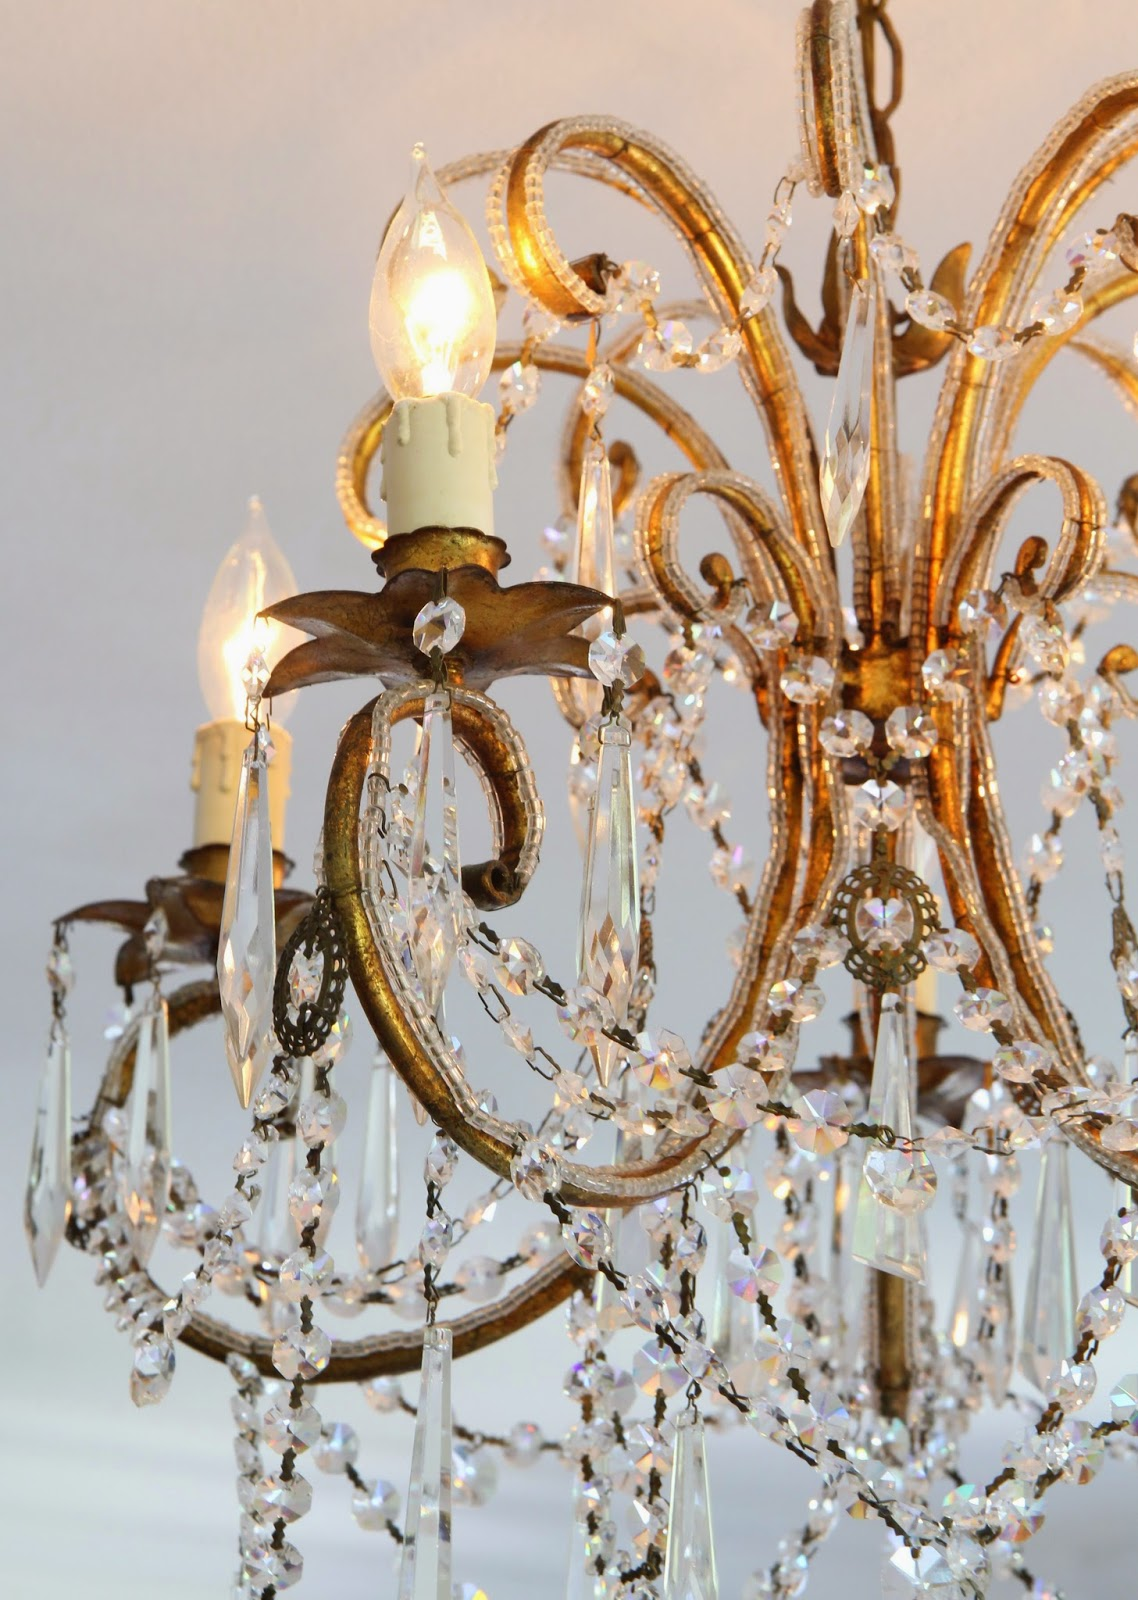 Antique Crystal Chandelier for the Master Bedroom; Nora's Nest